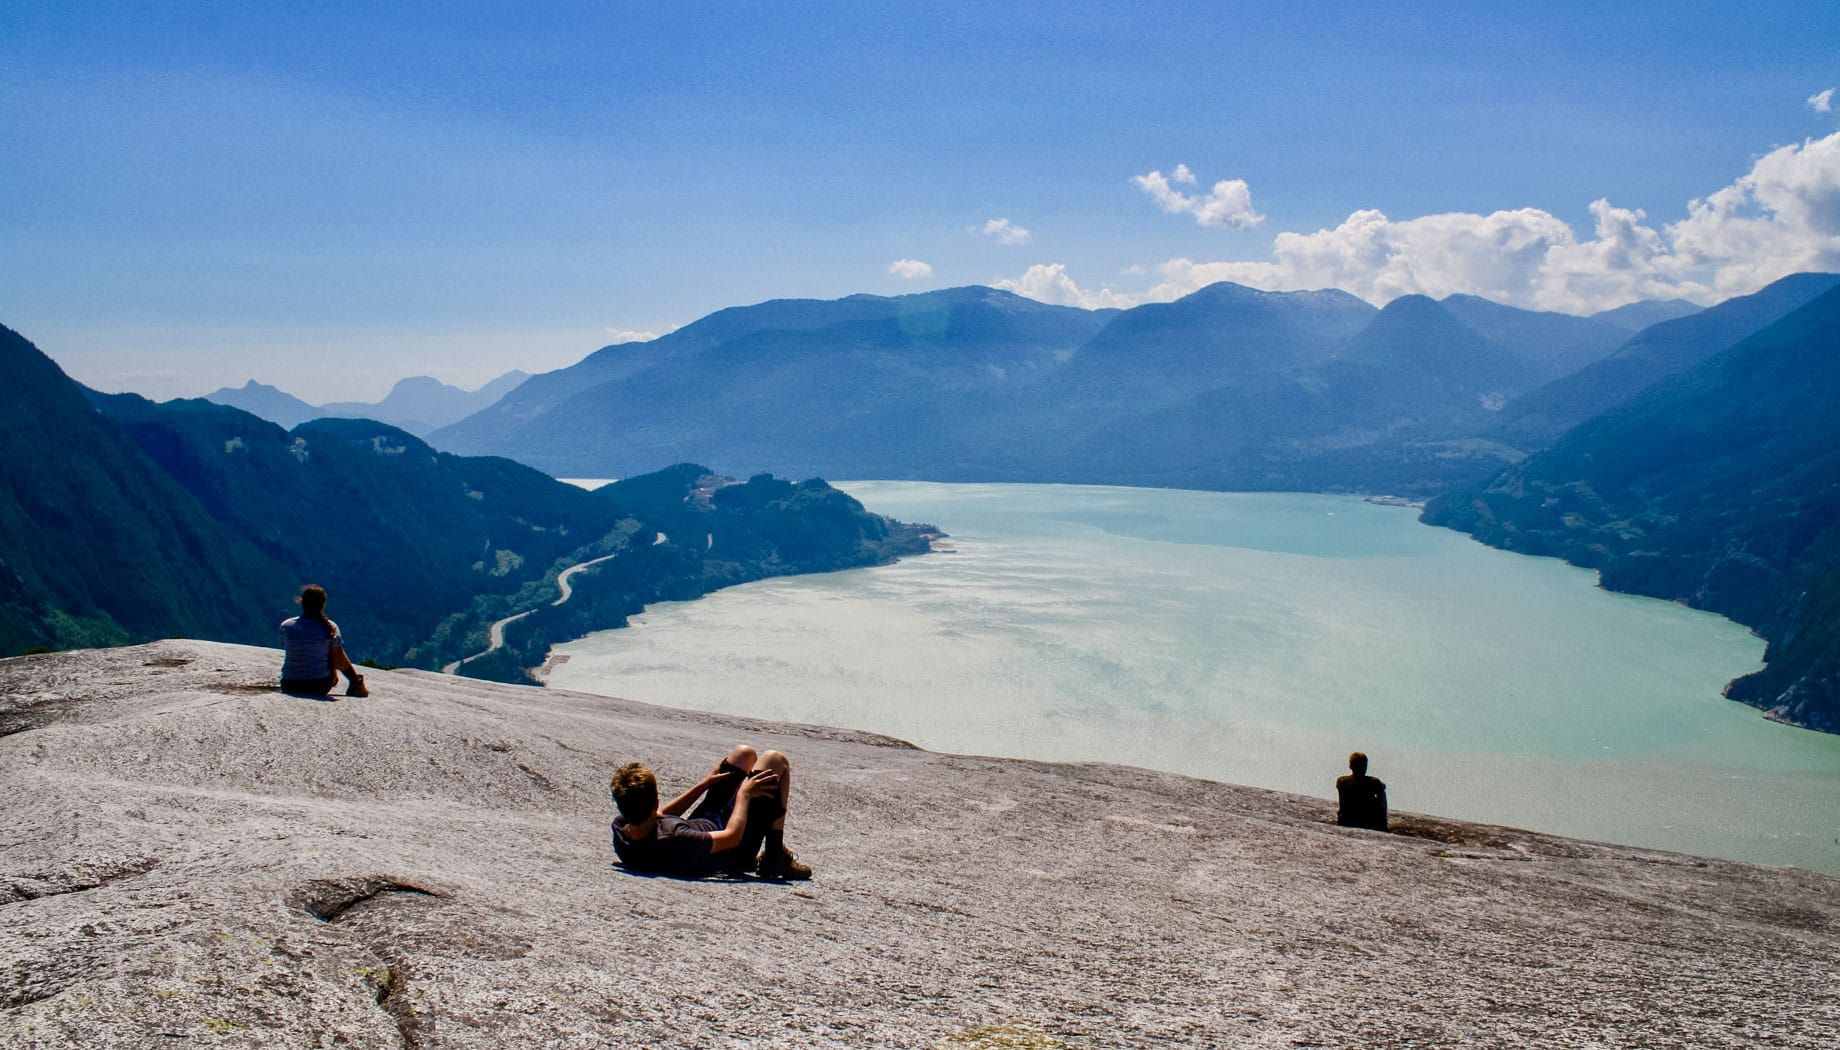 Hiking with scenic views on the Northwest Canada quest